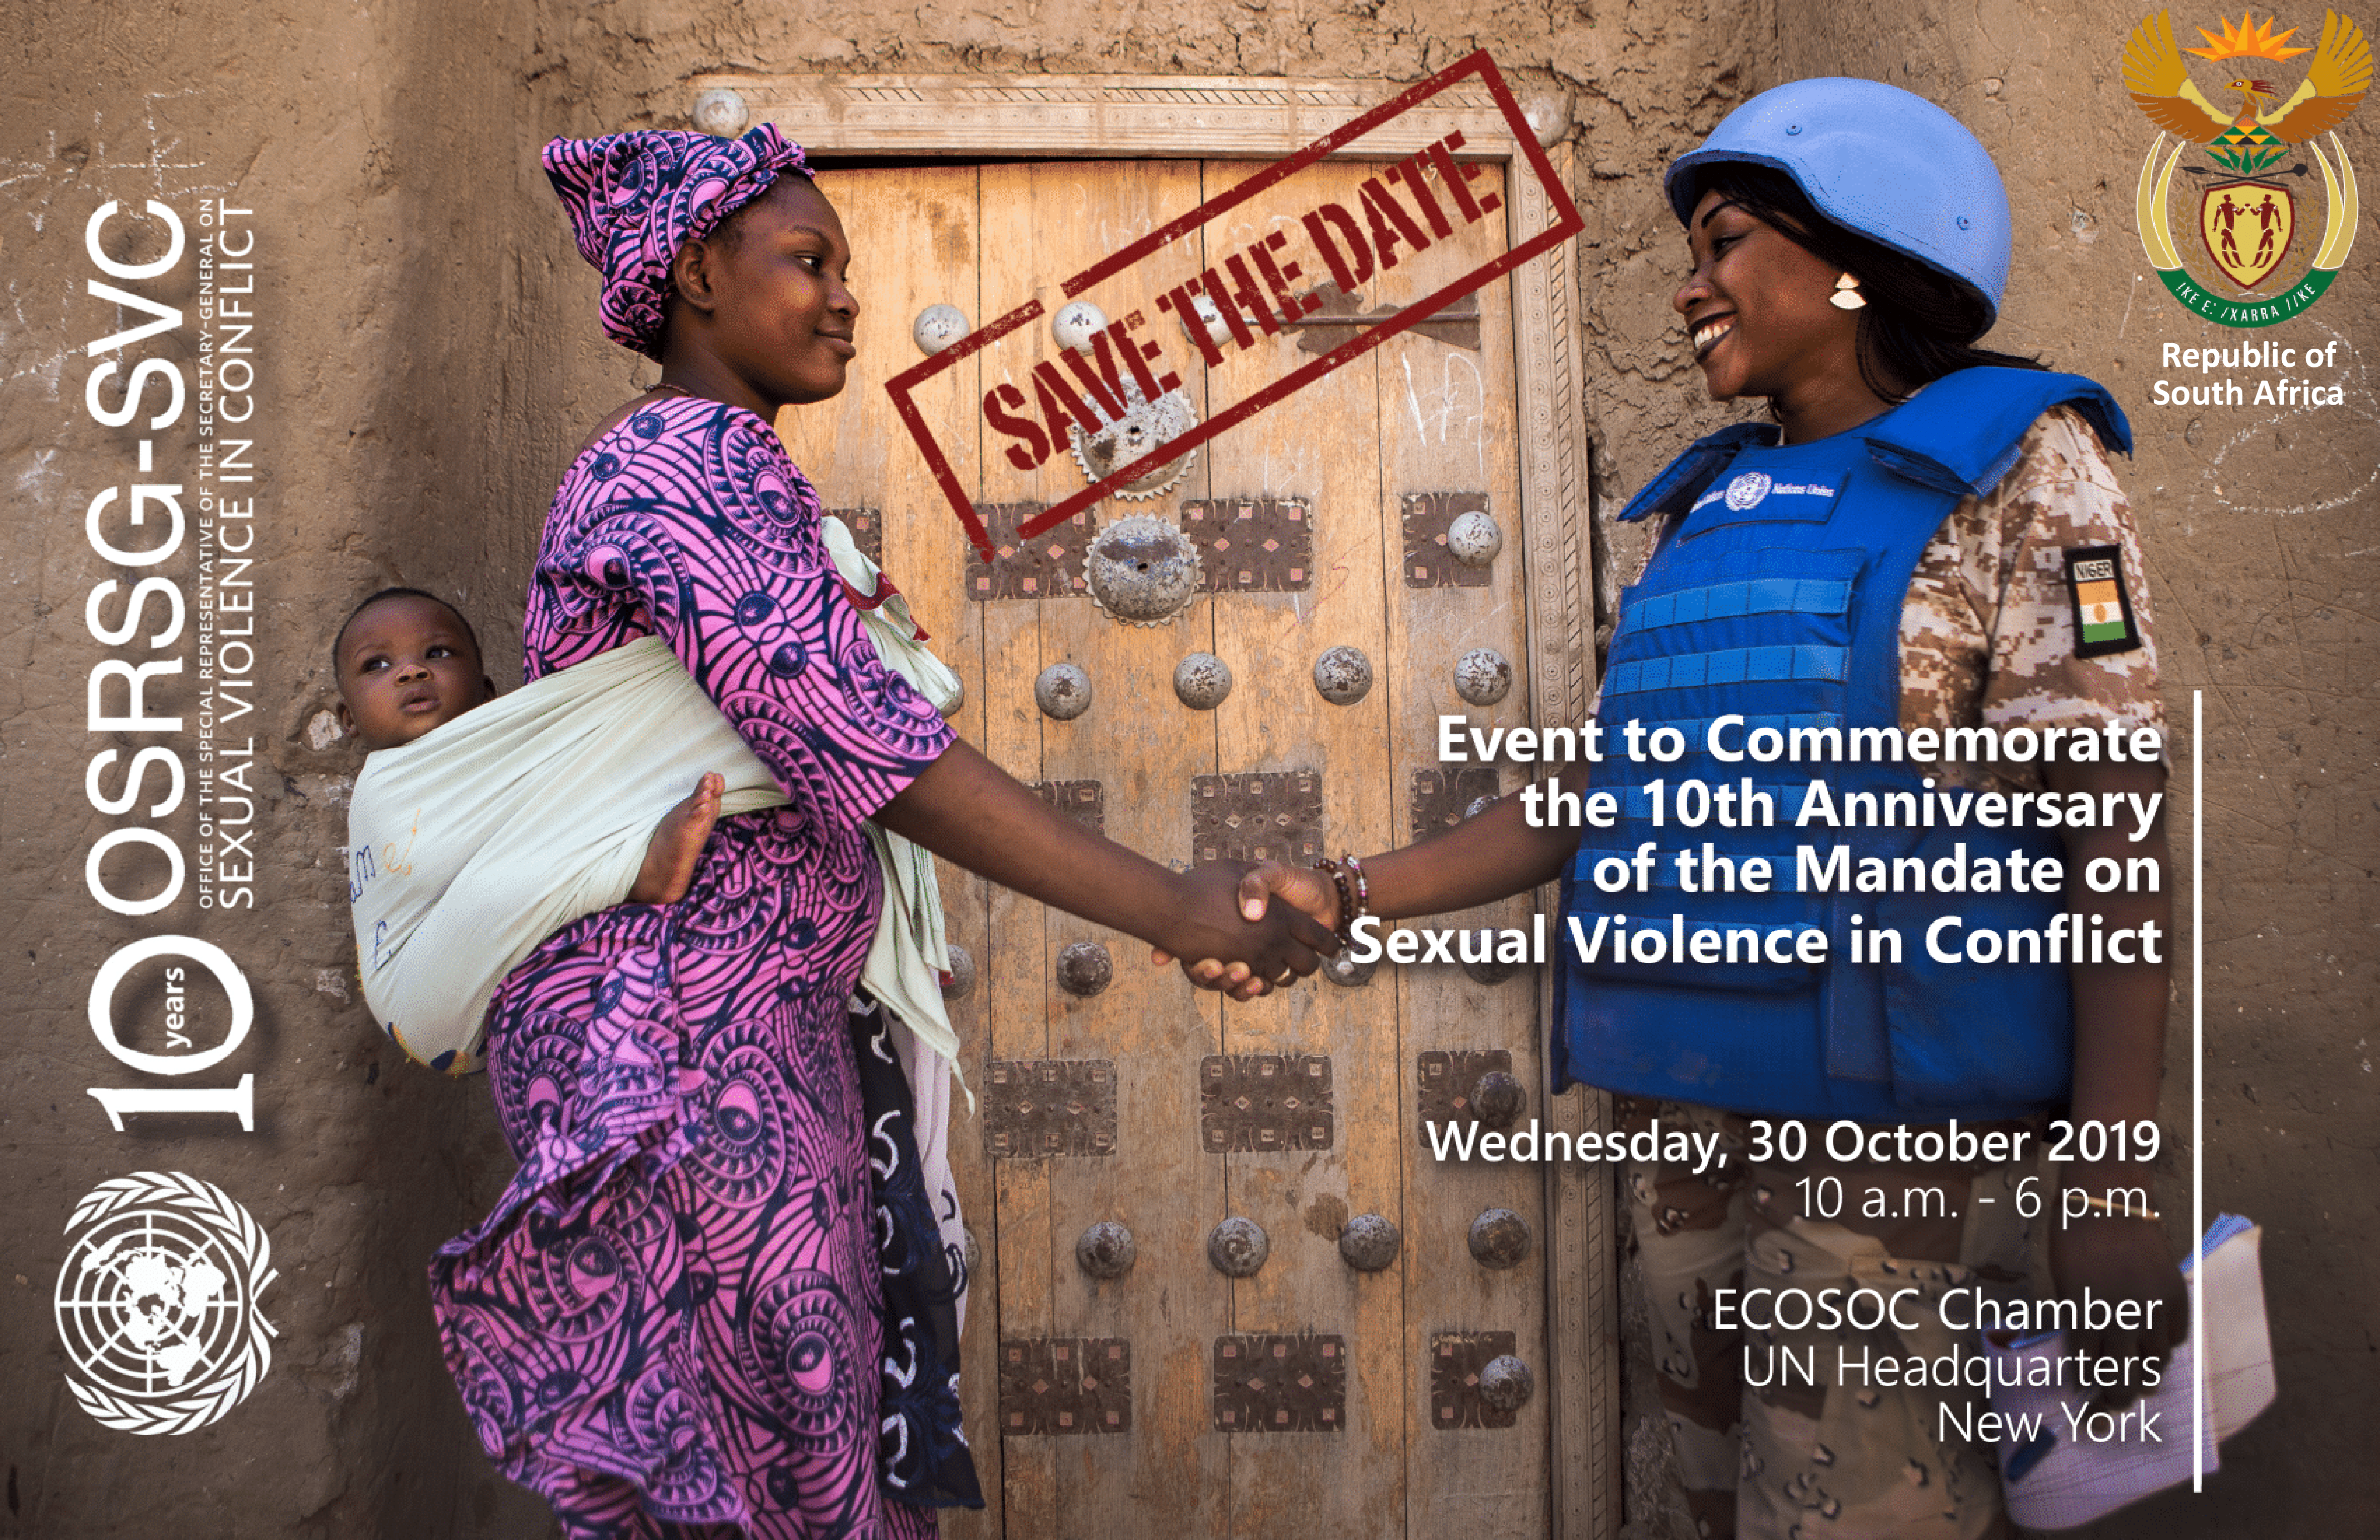 Event to Commemorate the 10th Anniversary of the Mandate on Sexual Violence in Conflict